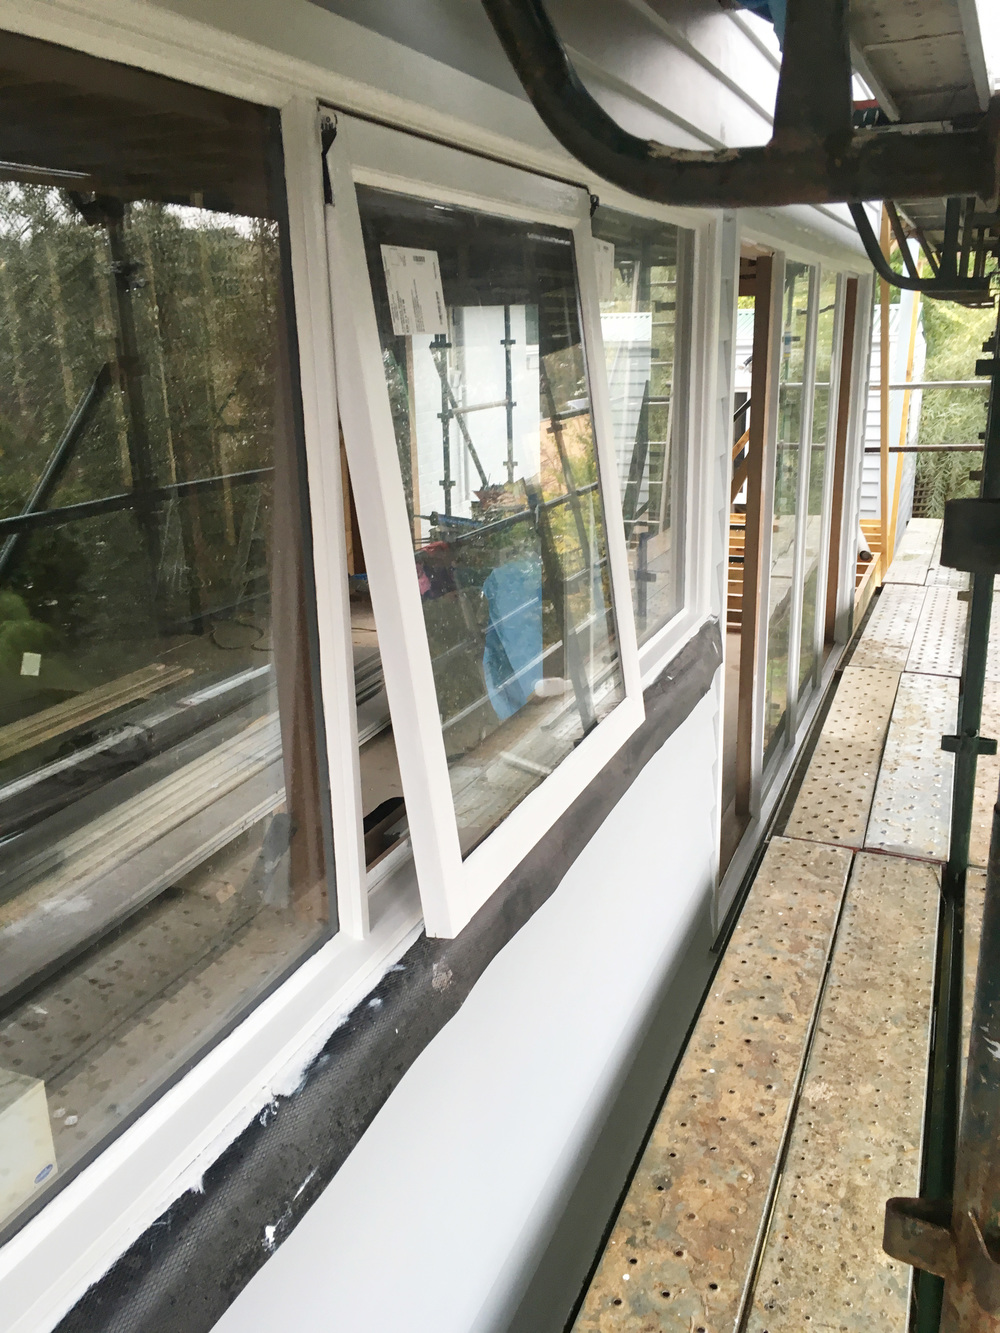 Open windows in between coats of paint to prevent painting the window shut